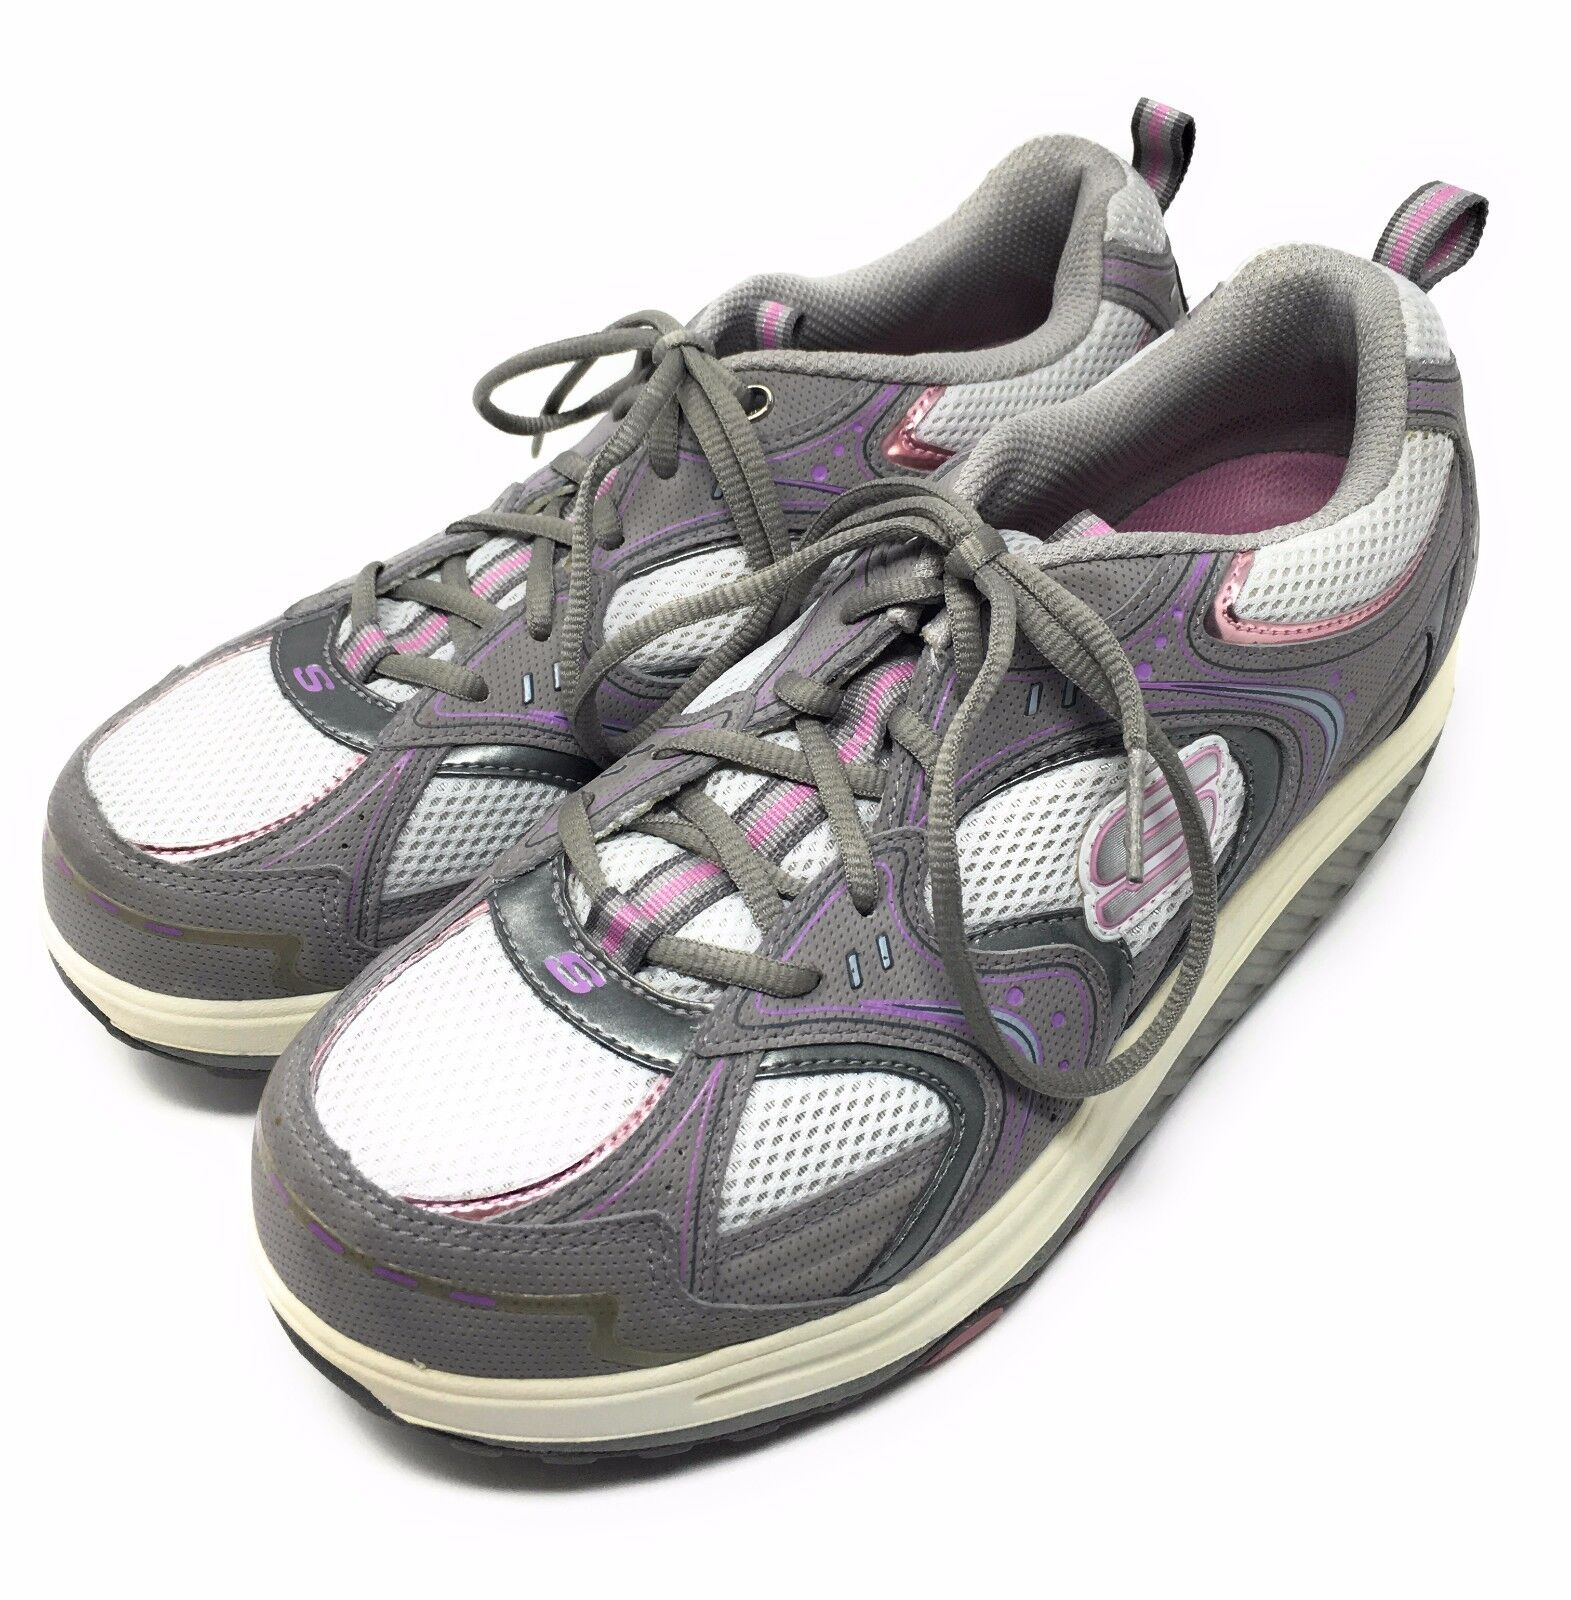 Skechers Shape Ups Womens Shoes Gray Pink Toning Walking Size 10 11806